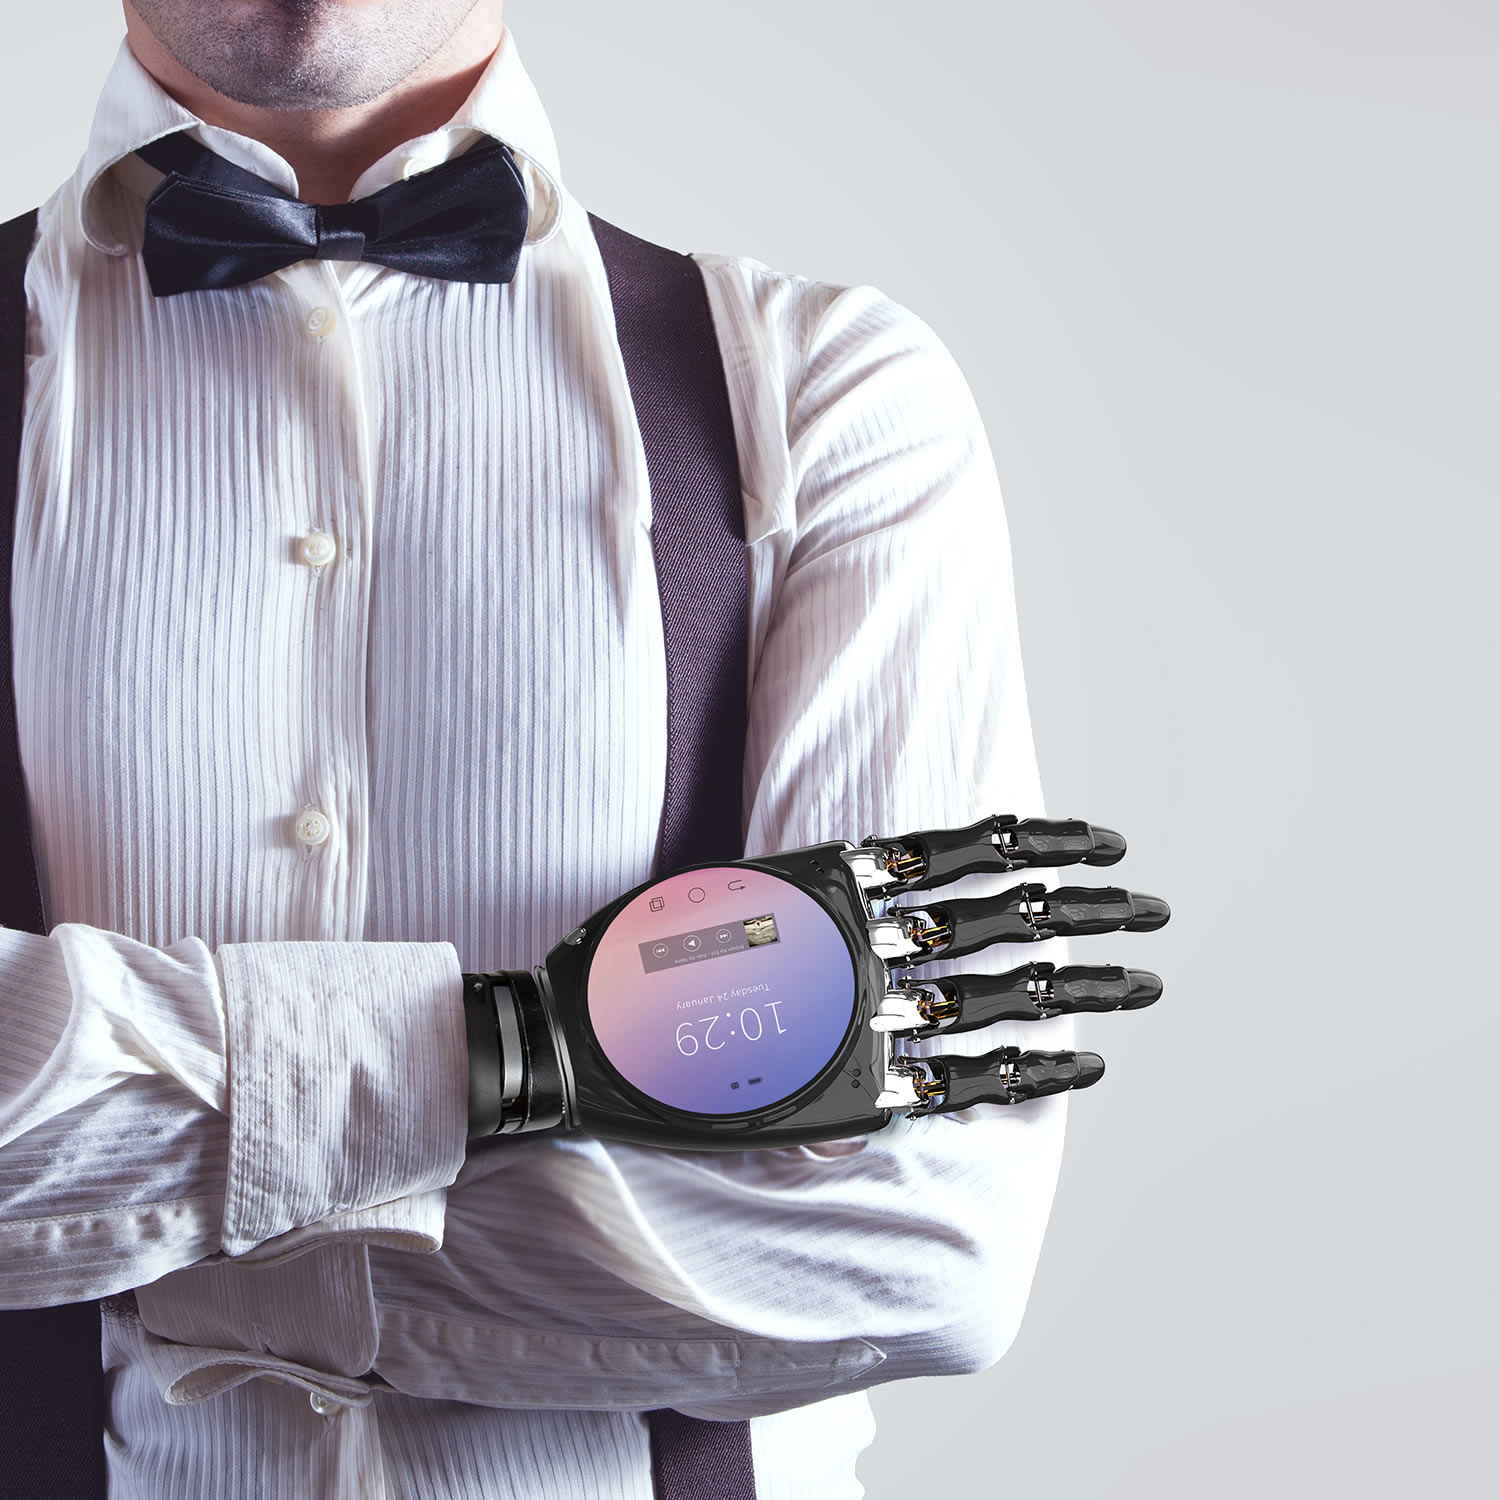 Sph Smart Prosthetic Hand by Young Jo In